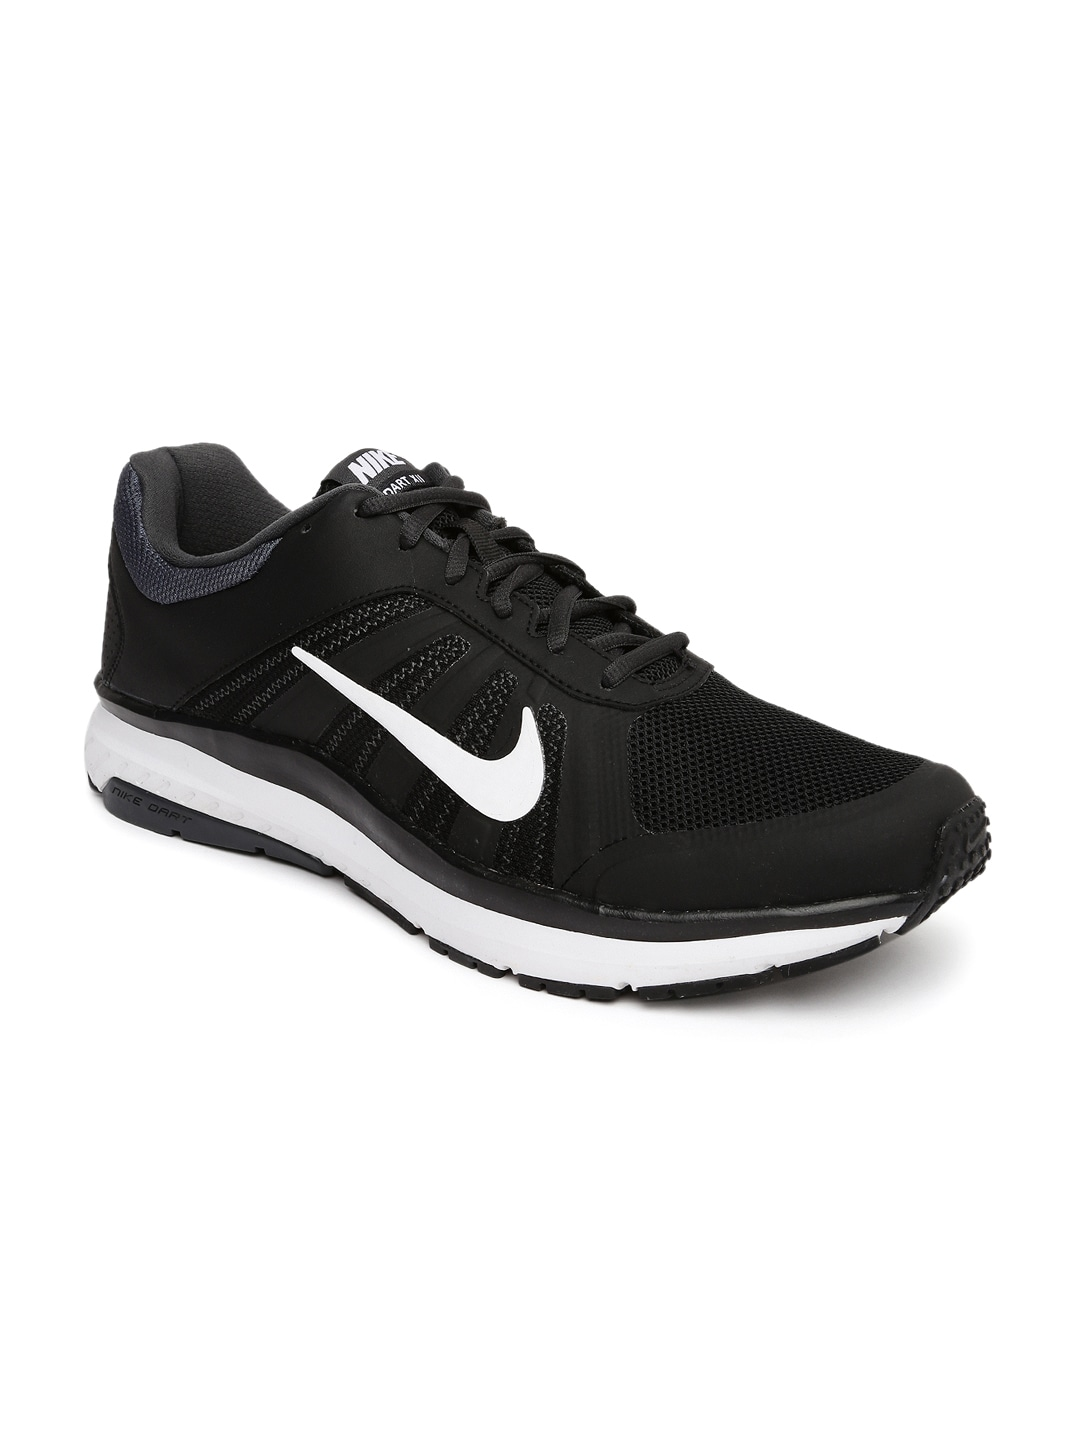 promo code d0b00 3f586 Sports Shoes - Buy Sport Shoes For Men   Women Online   Myntra